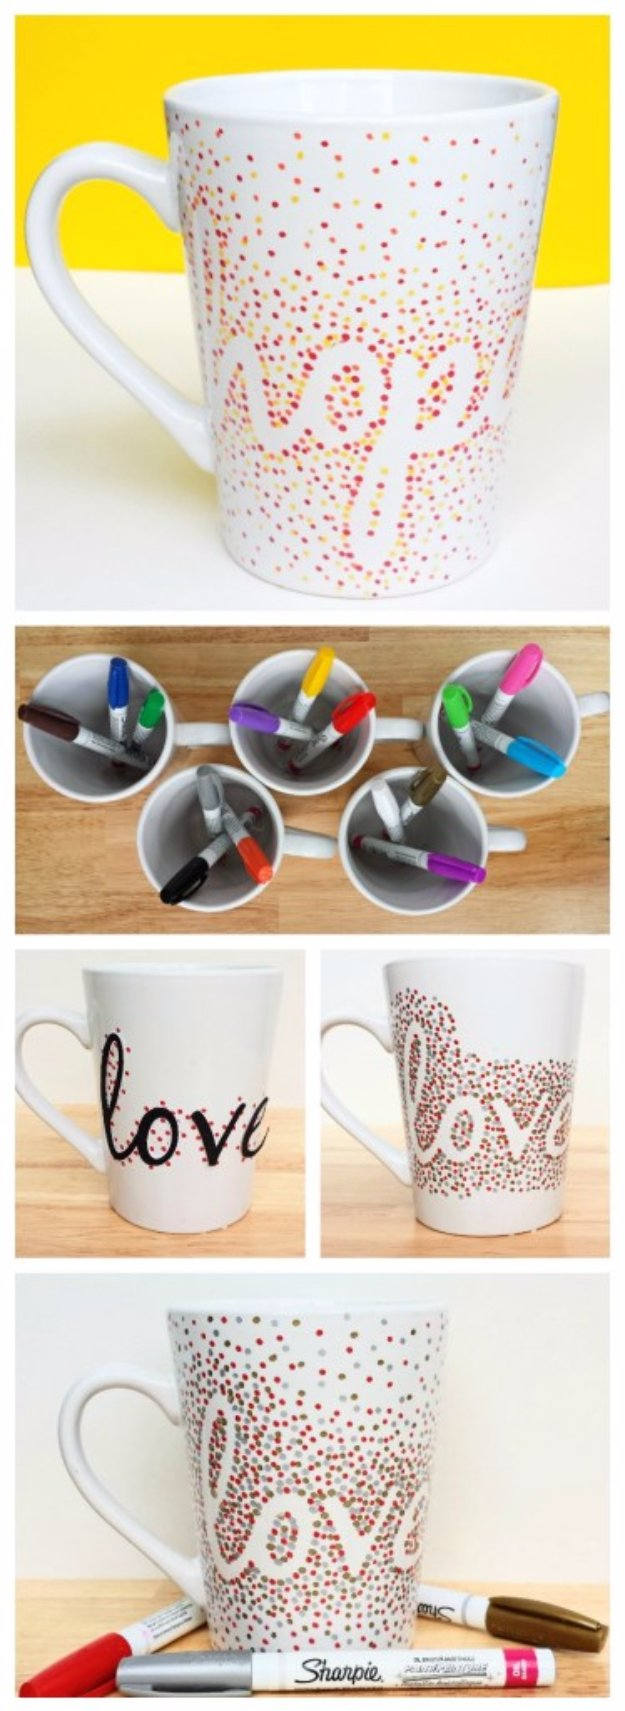 Easy Crafts To Make and Sell - Dotted Sharpie Mugs - Cool Homemade Craft Projects You Can Sell On Etsy, at Craft Fairs, Online and in Stores. Quick and Cheap DIY Ideas that Adults and Even Teens #craftstosell #diyideas #crafts